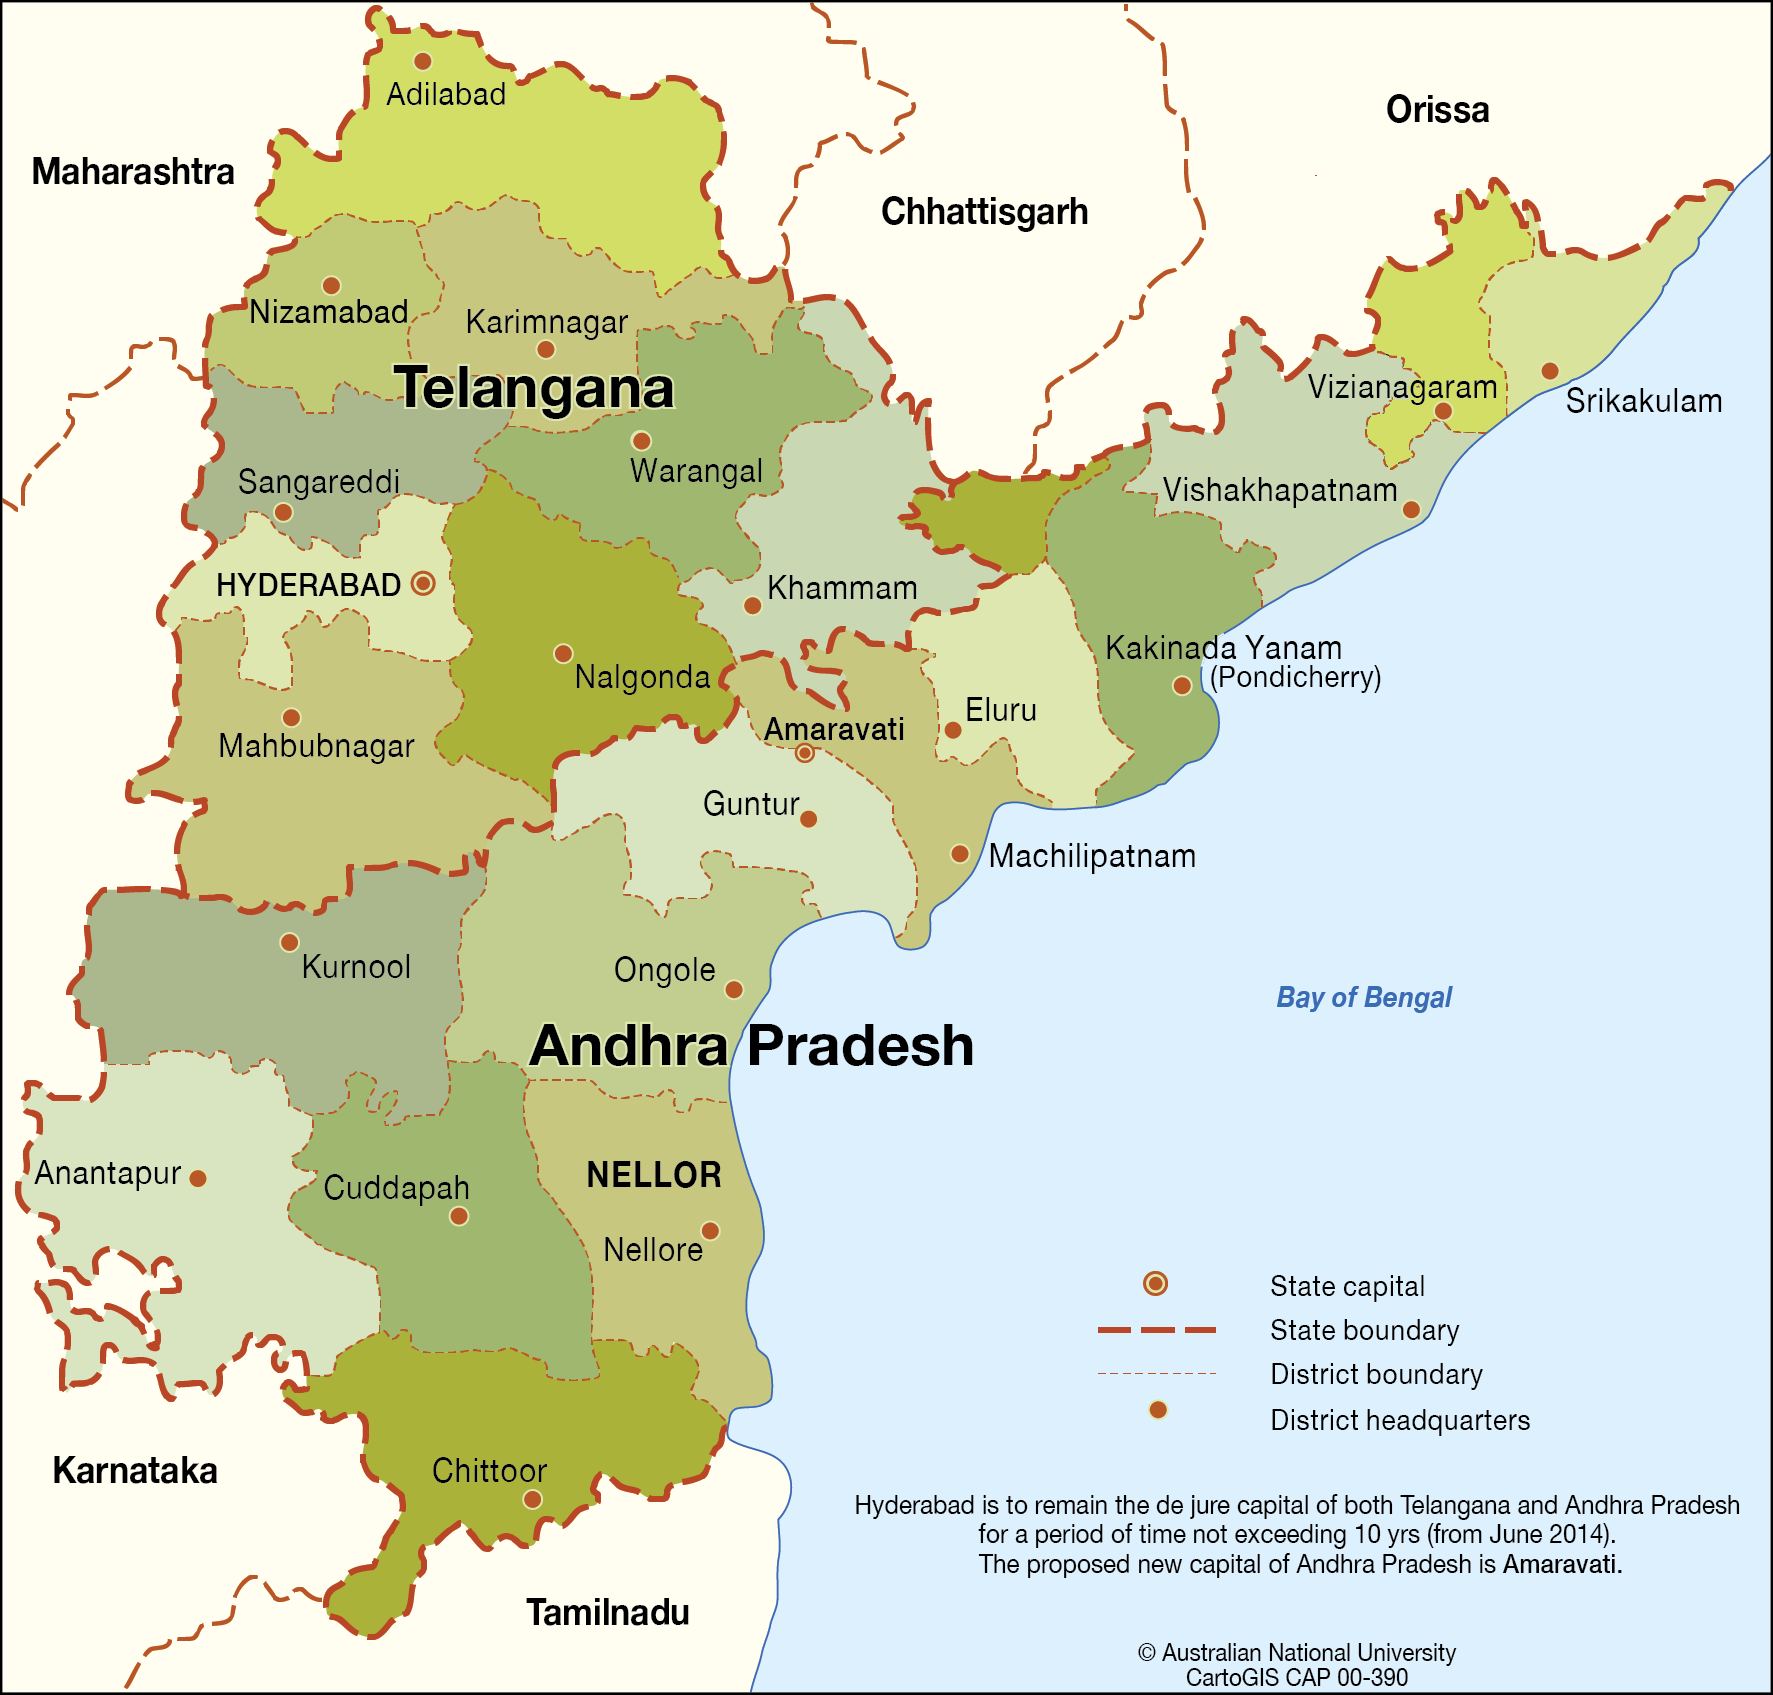 Andhra Pradesh Map Andhra Pradesh and Telangana States   CartoGIS Services Maps  Andhra Pradesh Map